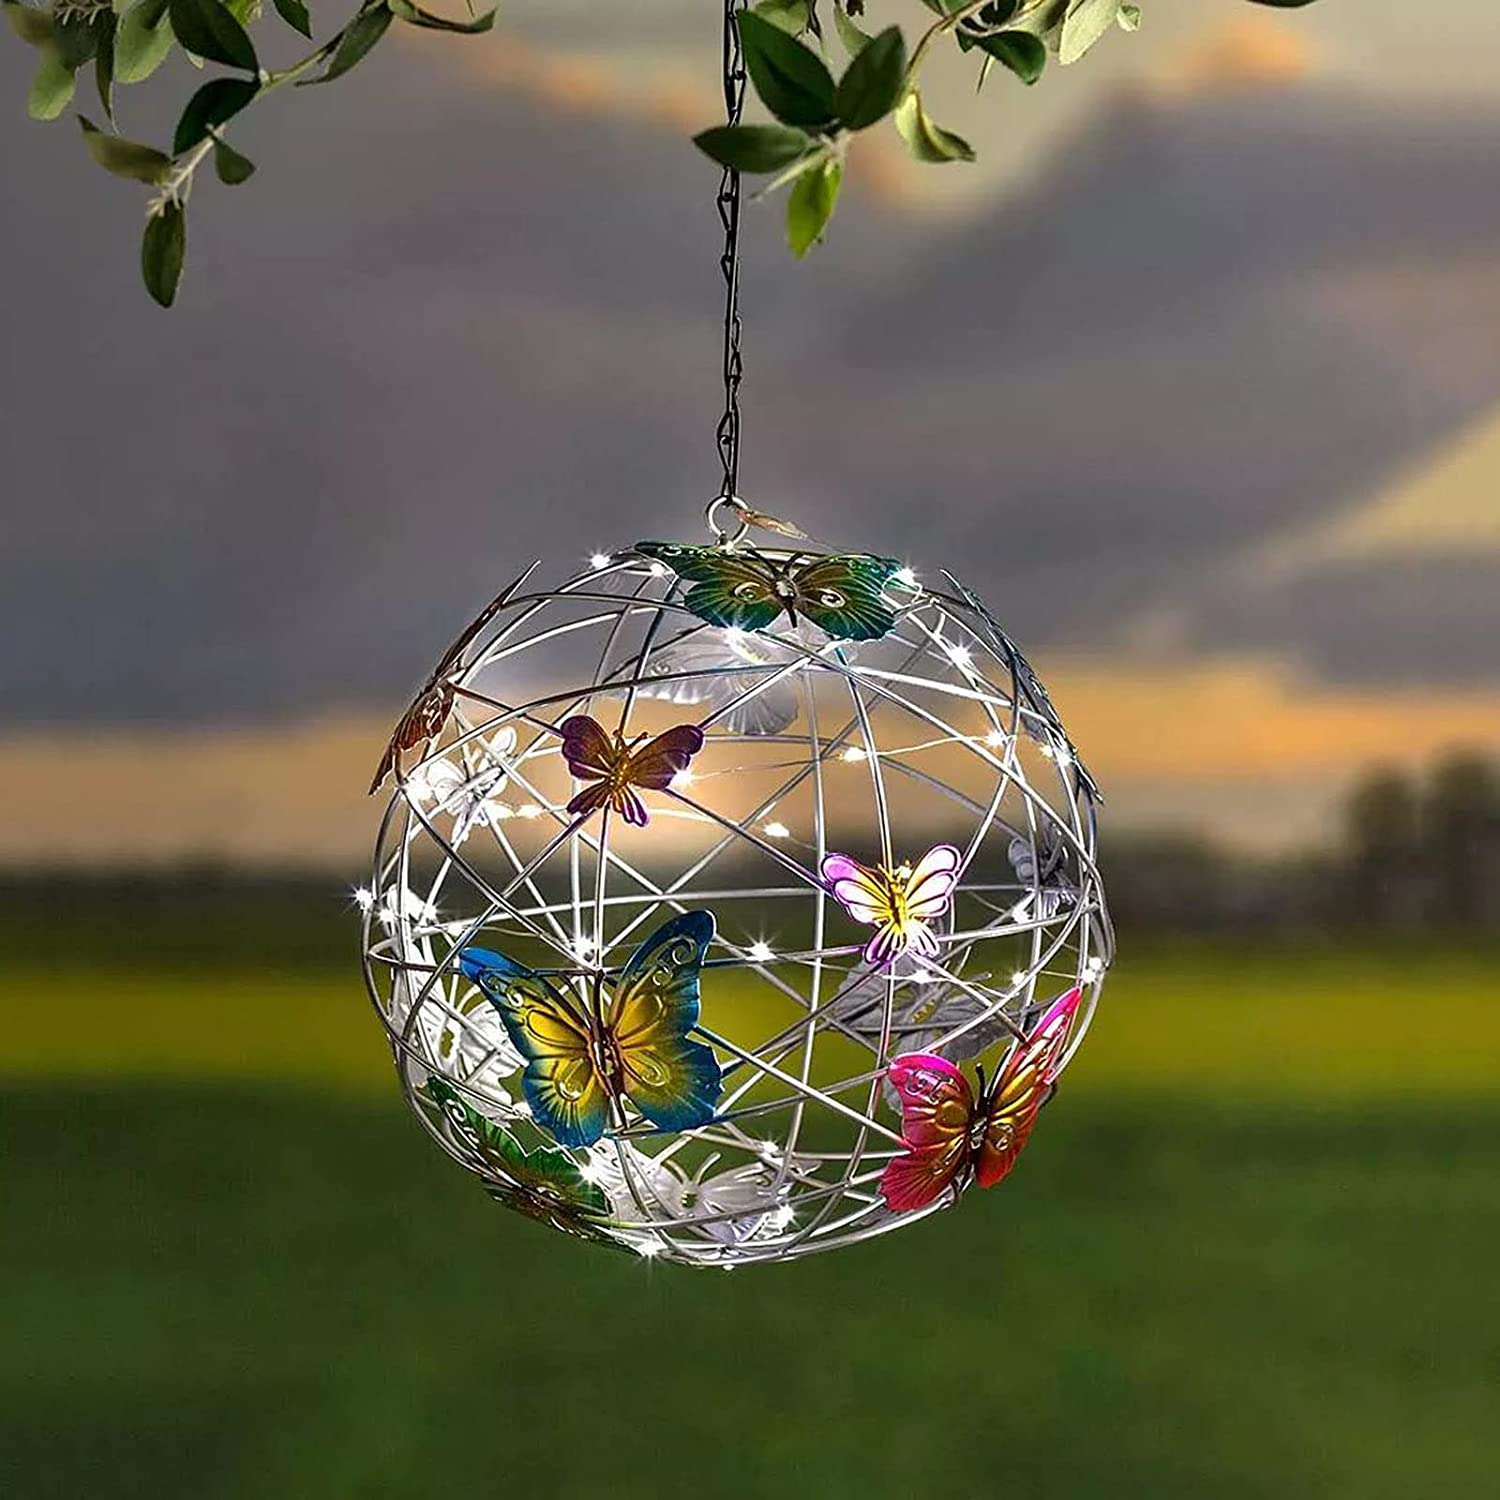 Solar Lighted Hanging Mesh Orb with Colorful Butterflies, Solar Lights Outdoor Hanging, Lantern Solar Lights Outdoor, Mesh Orb with Colorful Butterflies is a Dazzling Garden Decoration